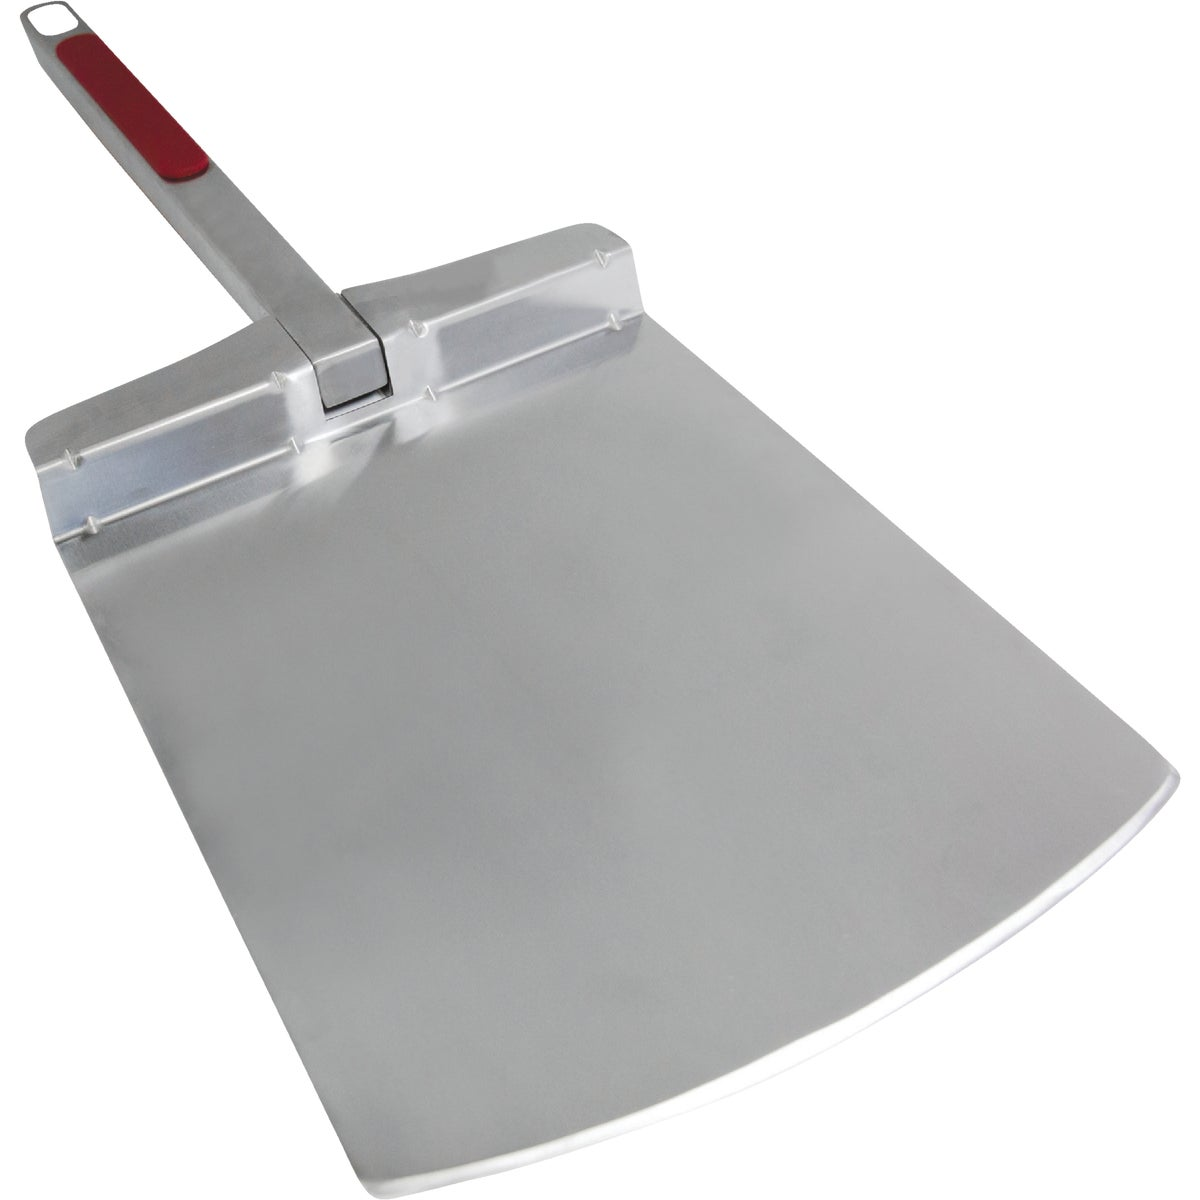 FOLDING PIZZA PEEL - 98159 by Onward Multi Corp  D